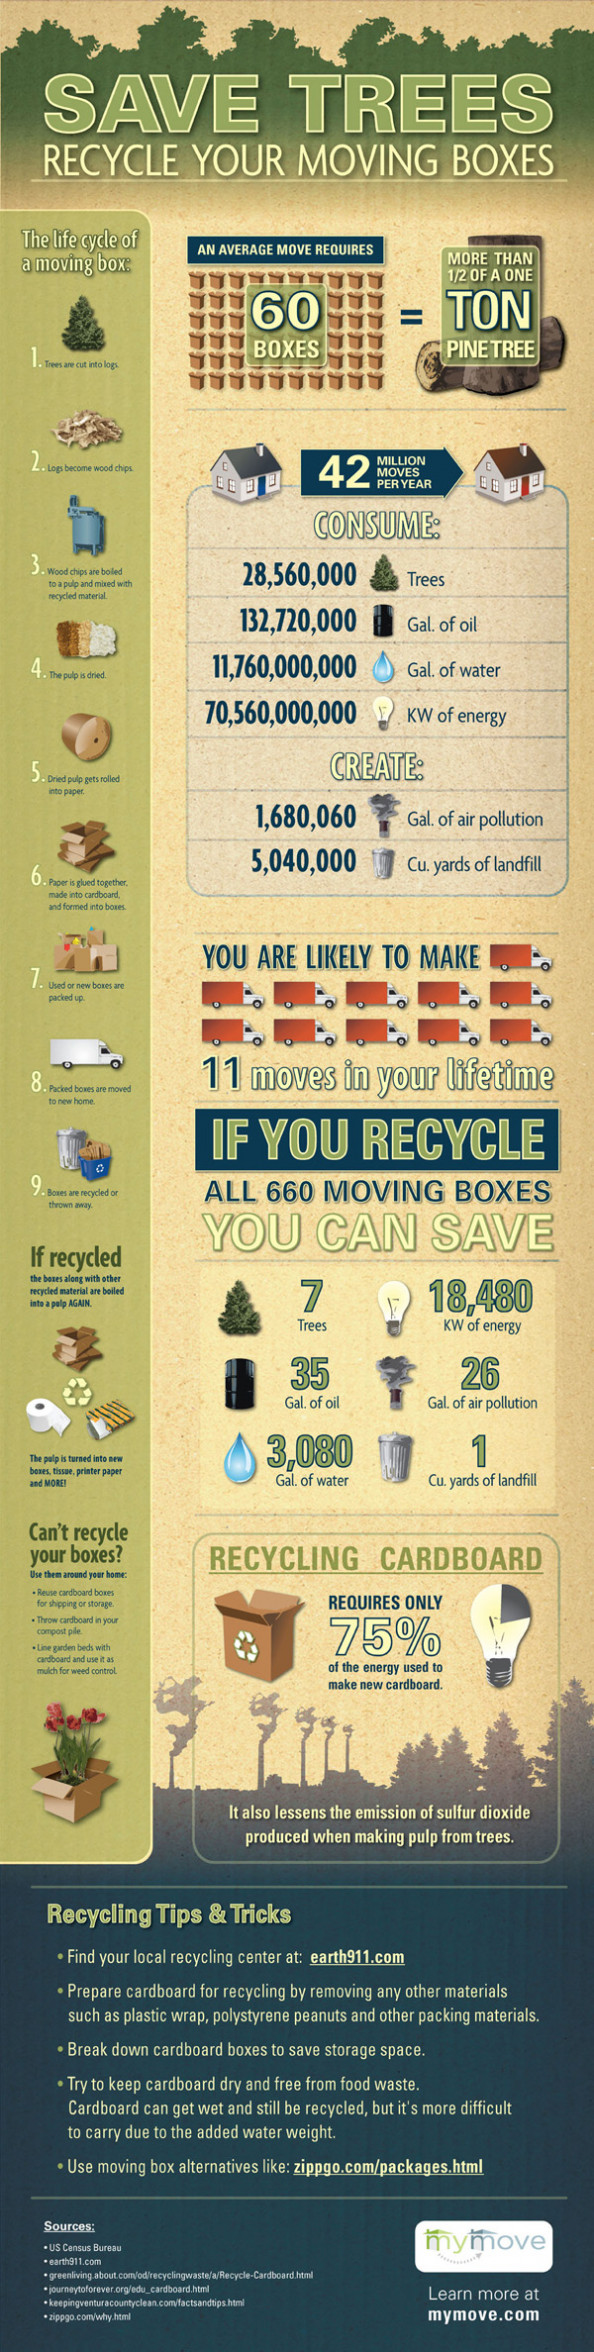 Save Trees: Recycle Your Moving Boxes Infographic